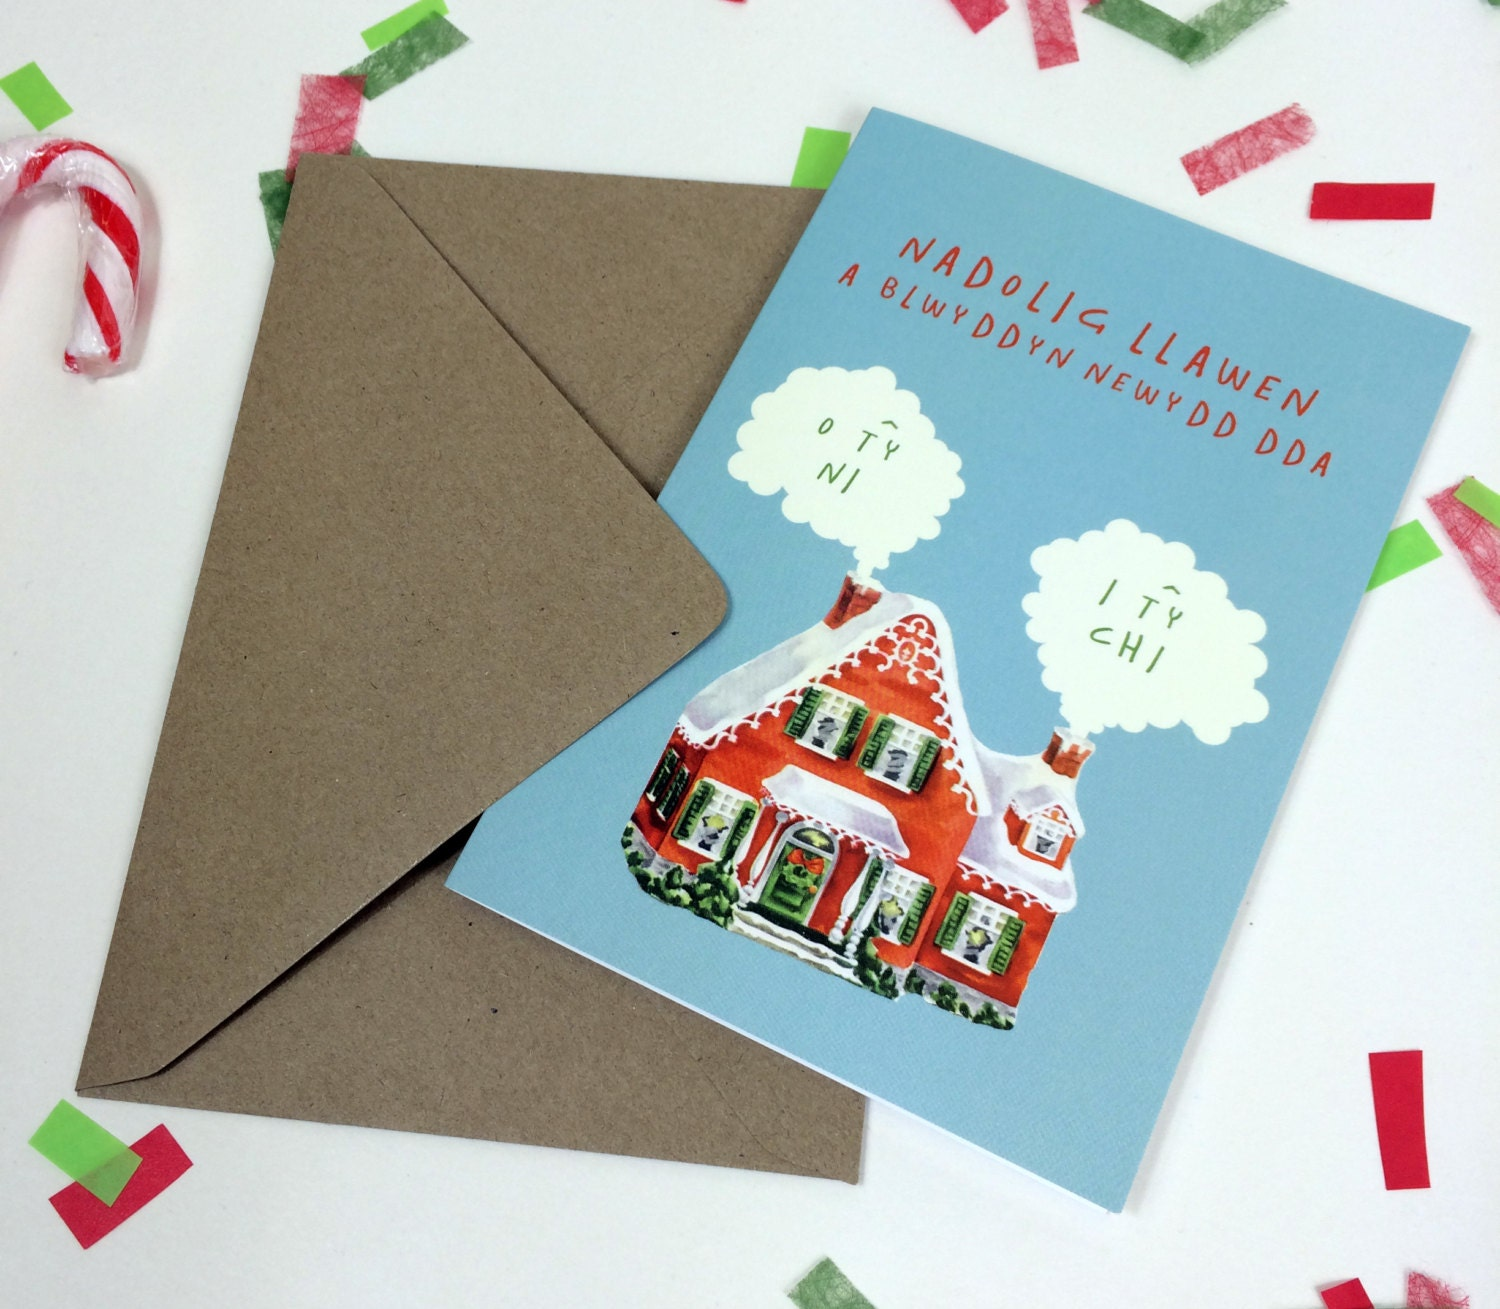 Nadolig llawen ty ni ty chi welsh text christmas eco friendly nadolig llawen ty ni ty chi welsh text christmas eco friendly greeting card kristyandbryce Images